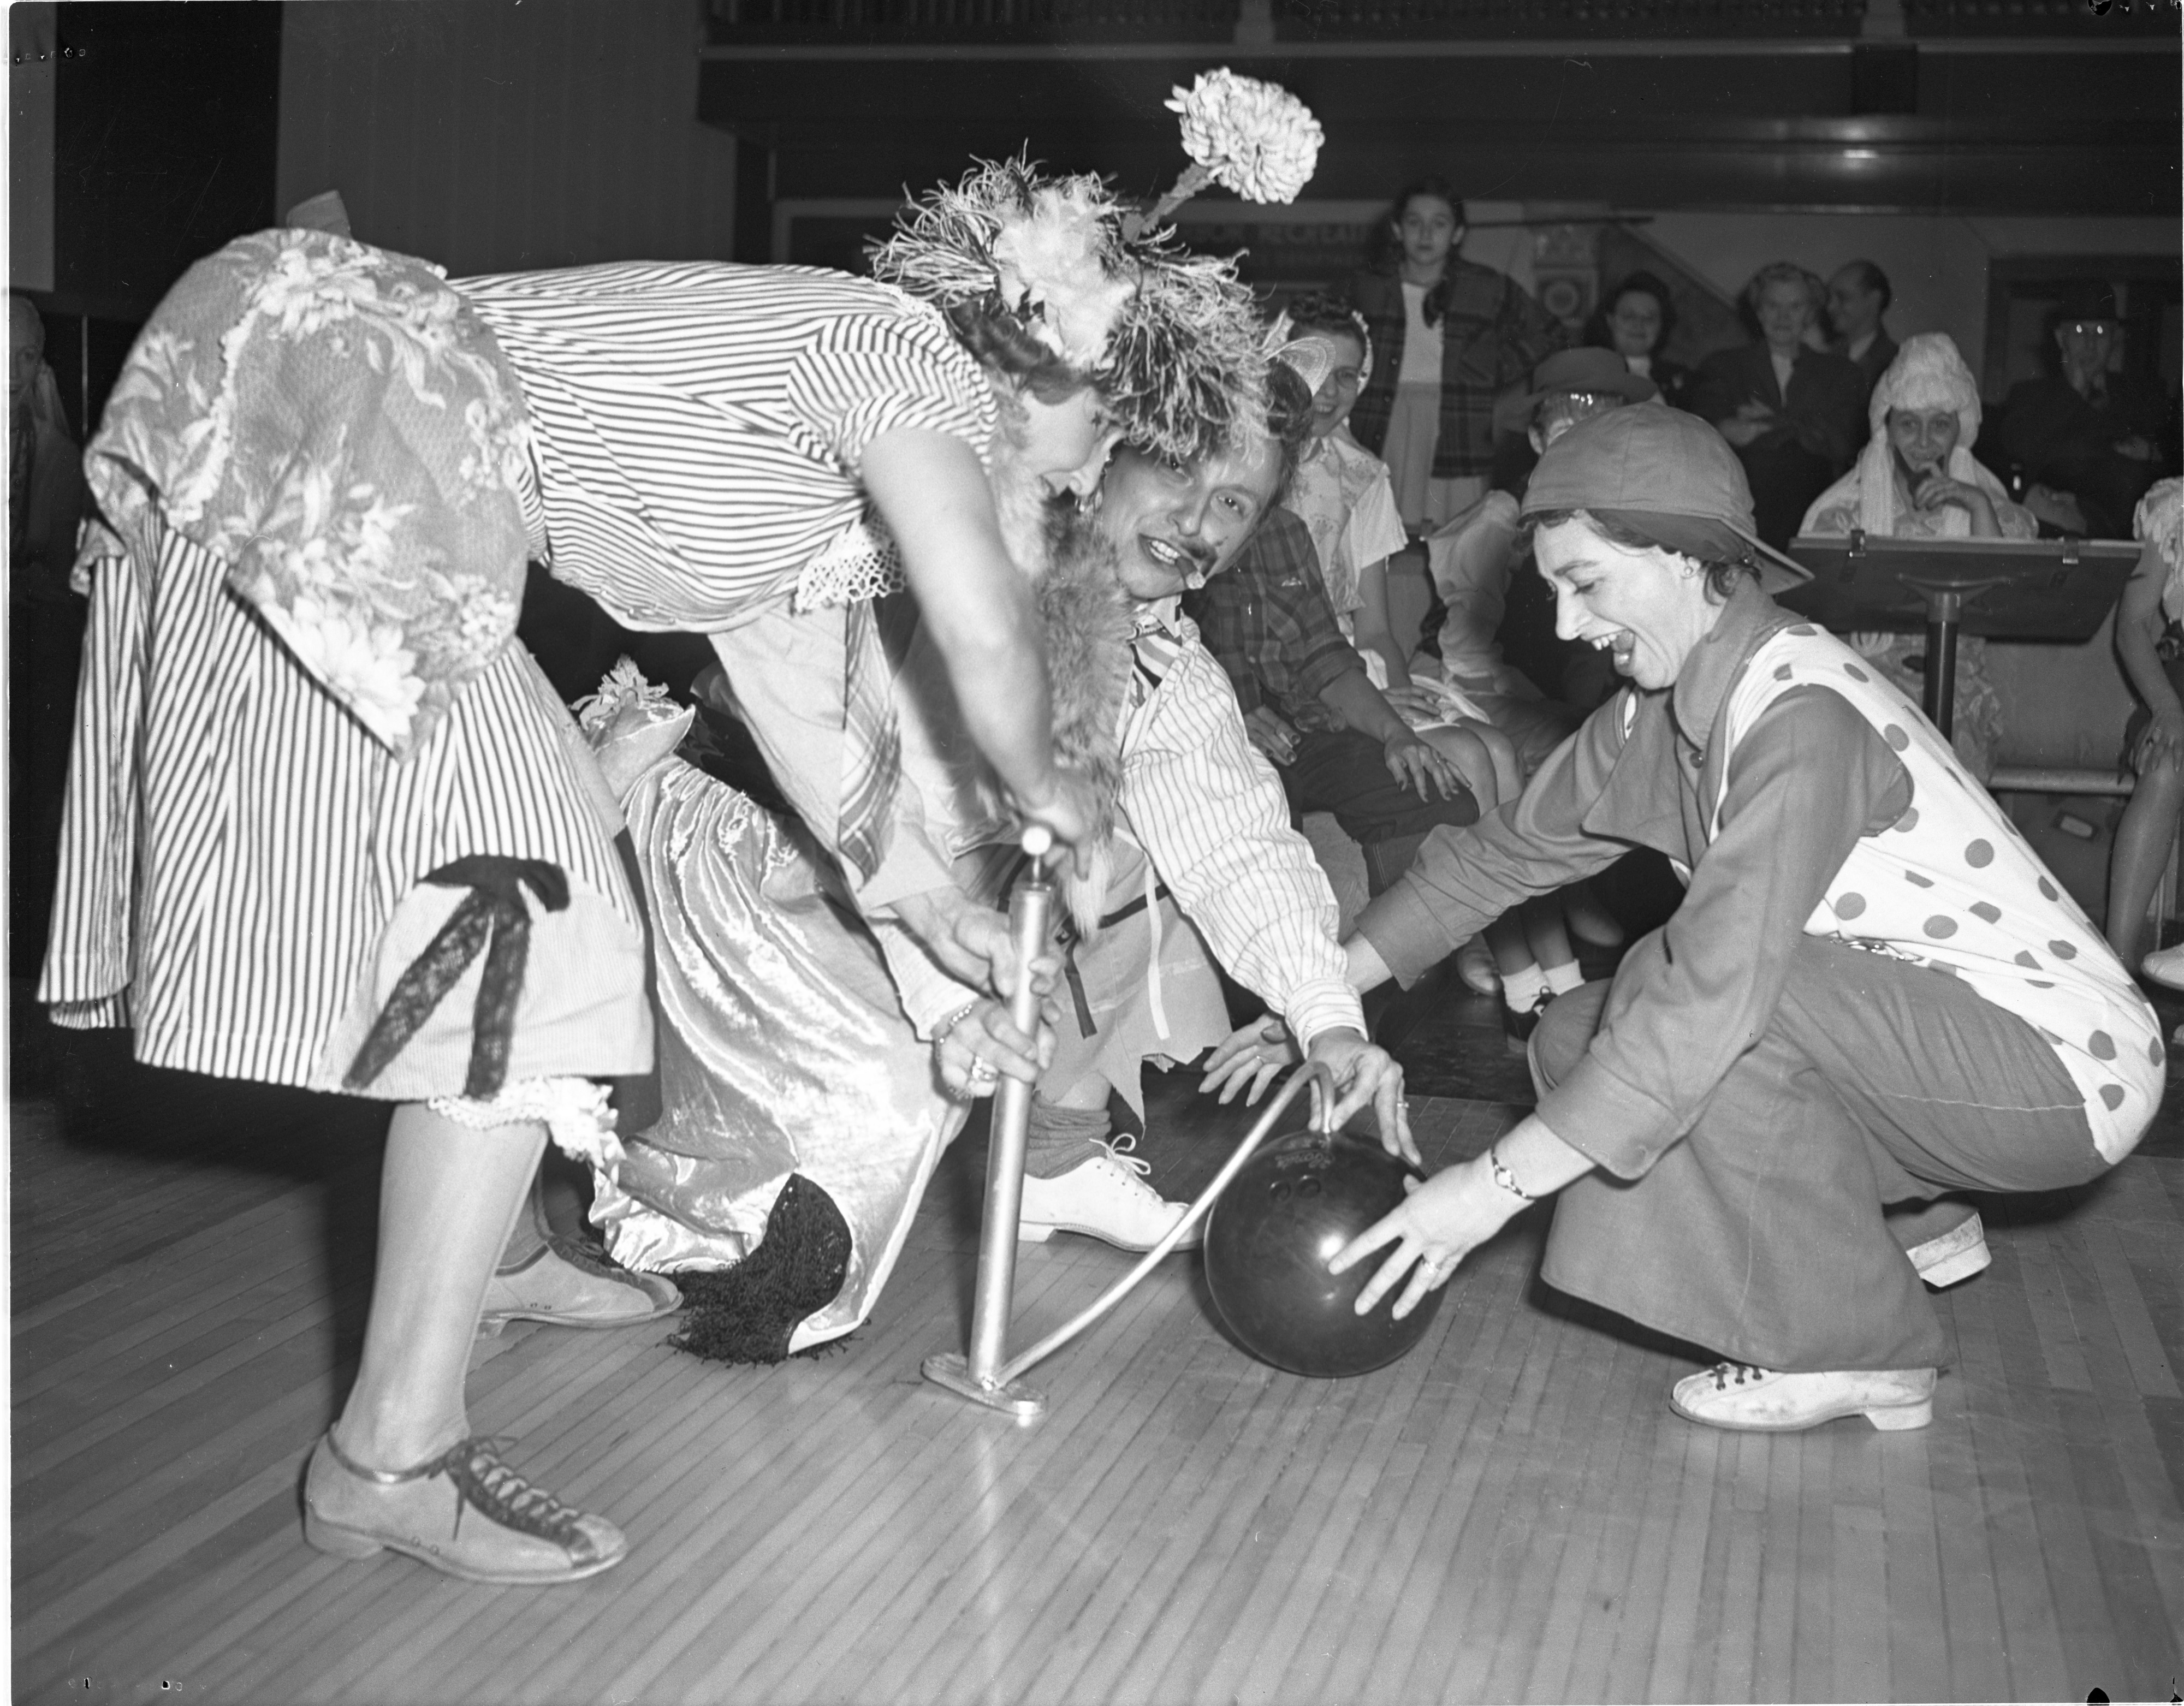 Ladies City Bowling League Halloween Costume Party, October 1948 image